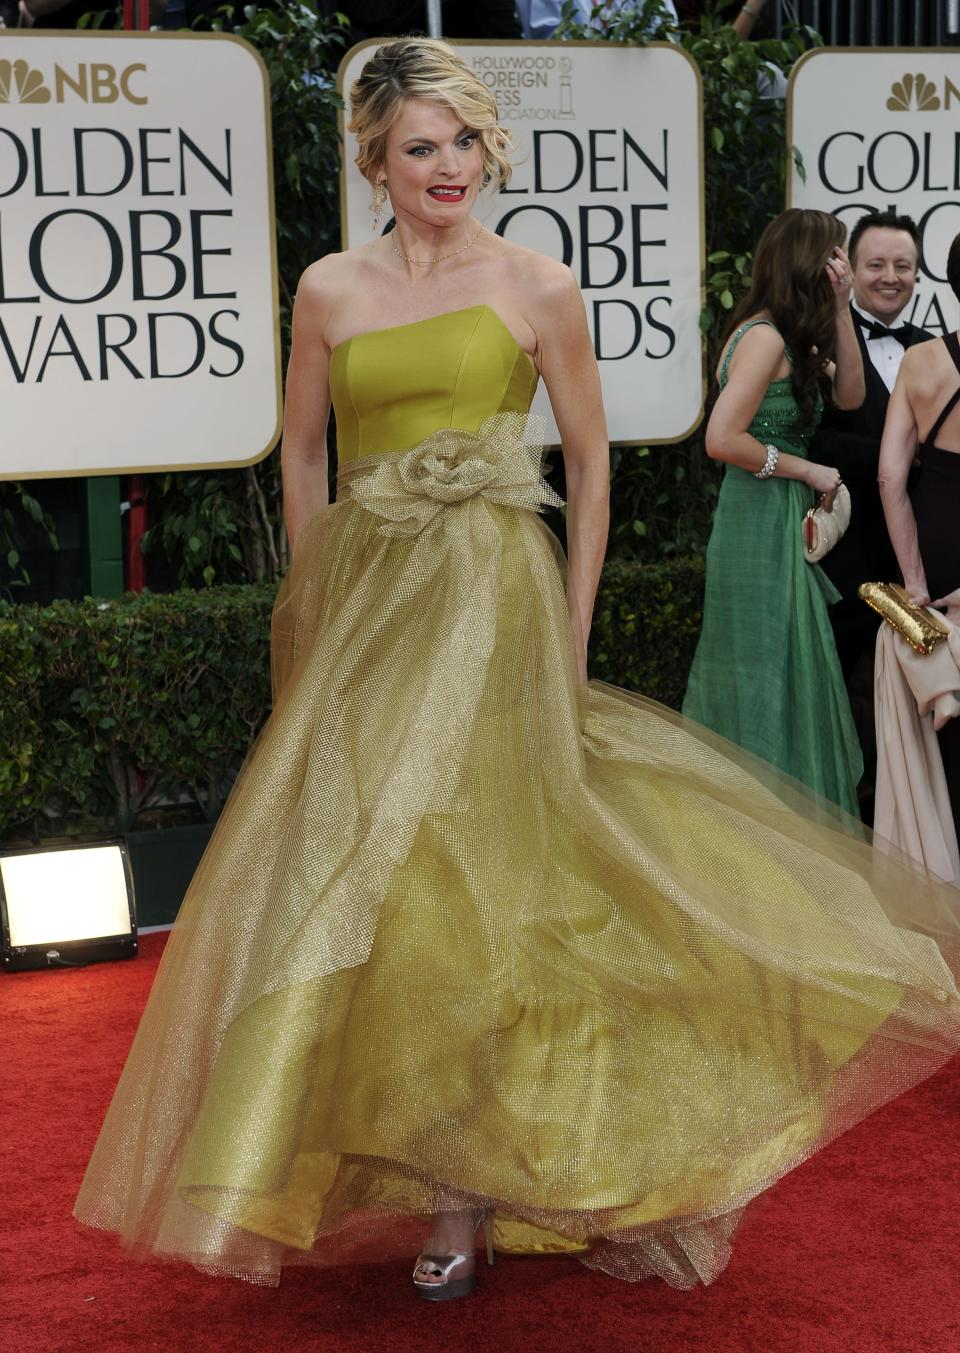 Missi Pyle arrives at the 69th Annual Golden Globe Awards Sunday, Jan. 15, 2012, in Los Angeles. (AP Photo/Chris Pizzello)